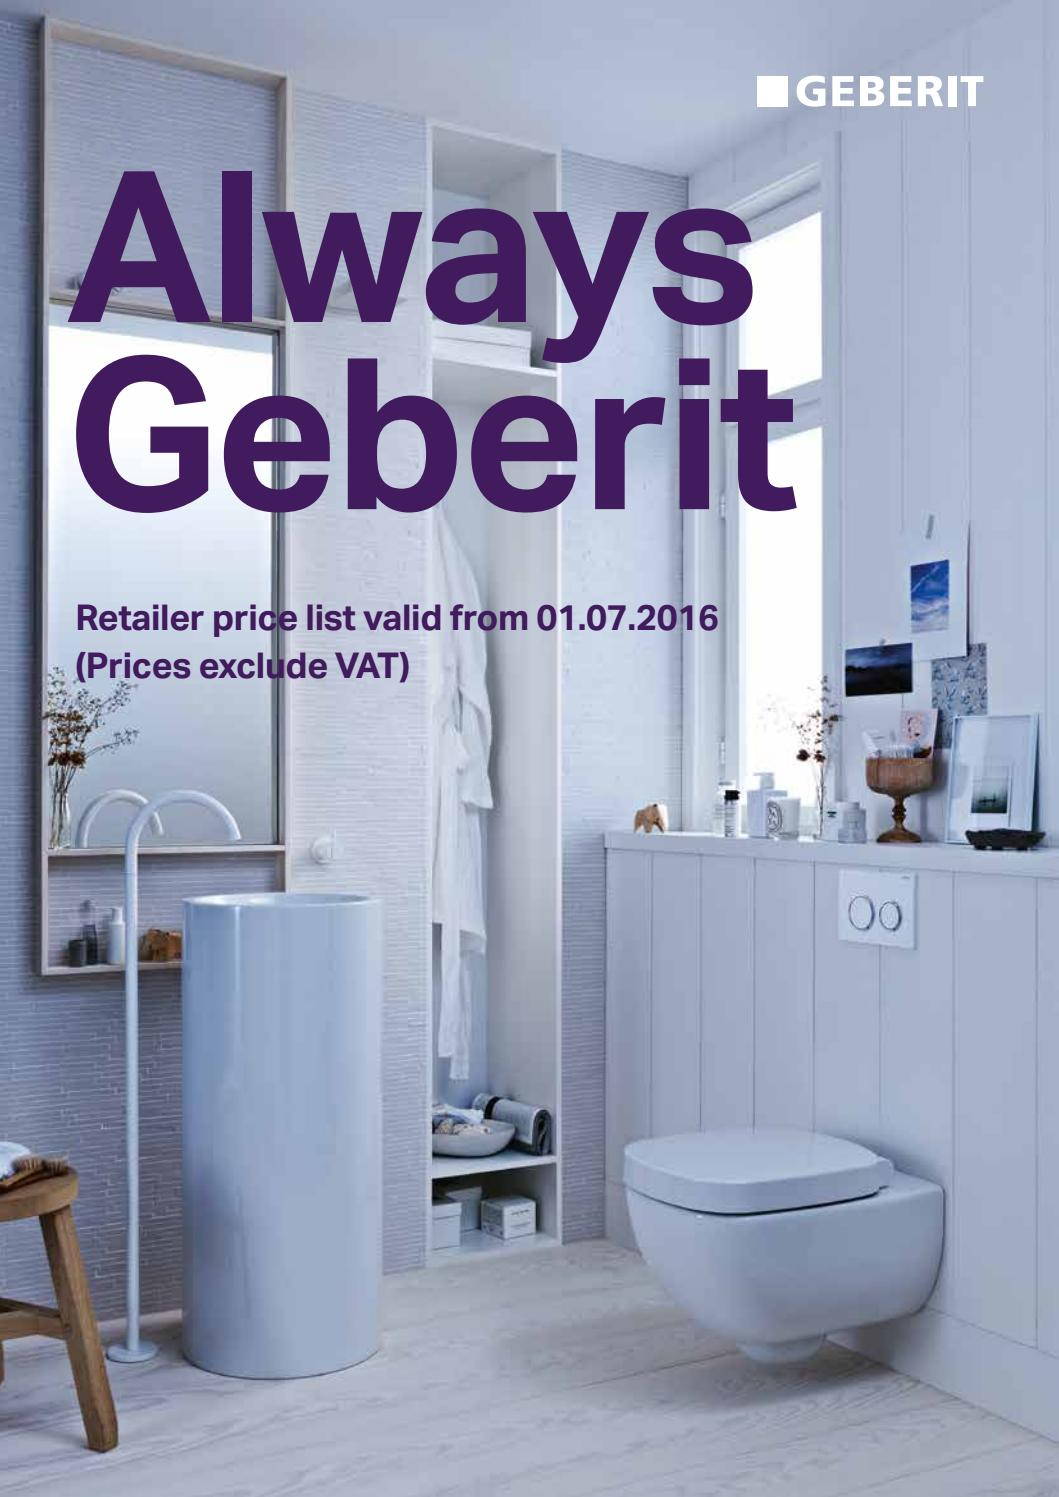 Geberit duofix frame for wall hung wc h82 with omega cistern 12cm - Geberit Duofix Frame For Wall Hung Wc H82 With Omega Cistern 12cm 50